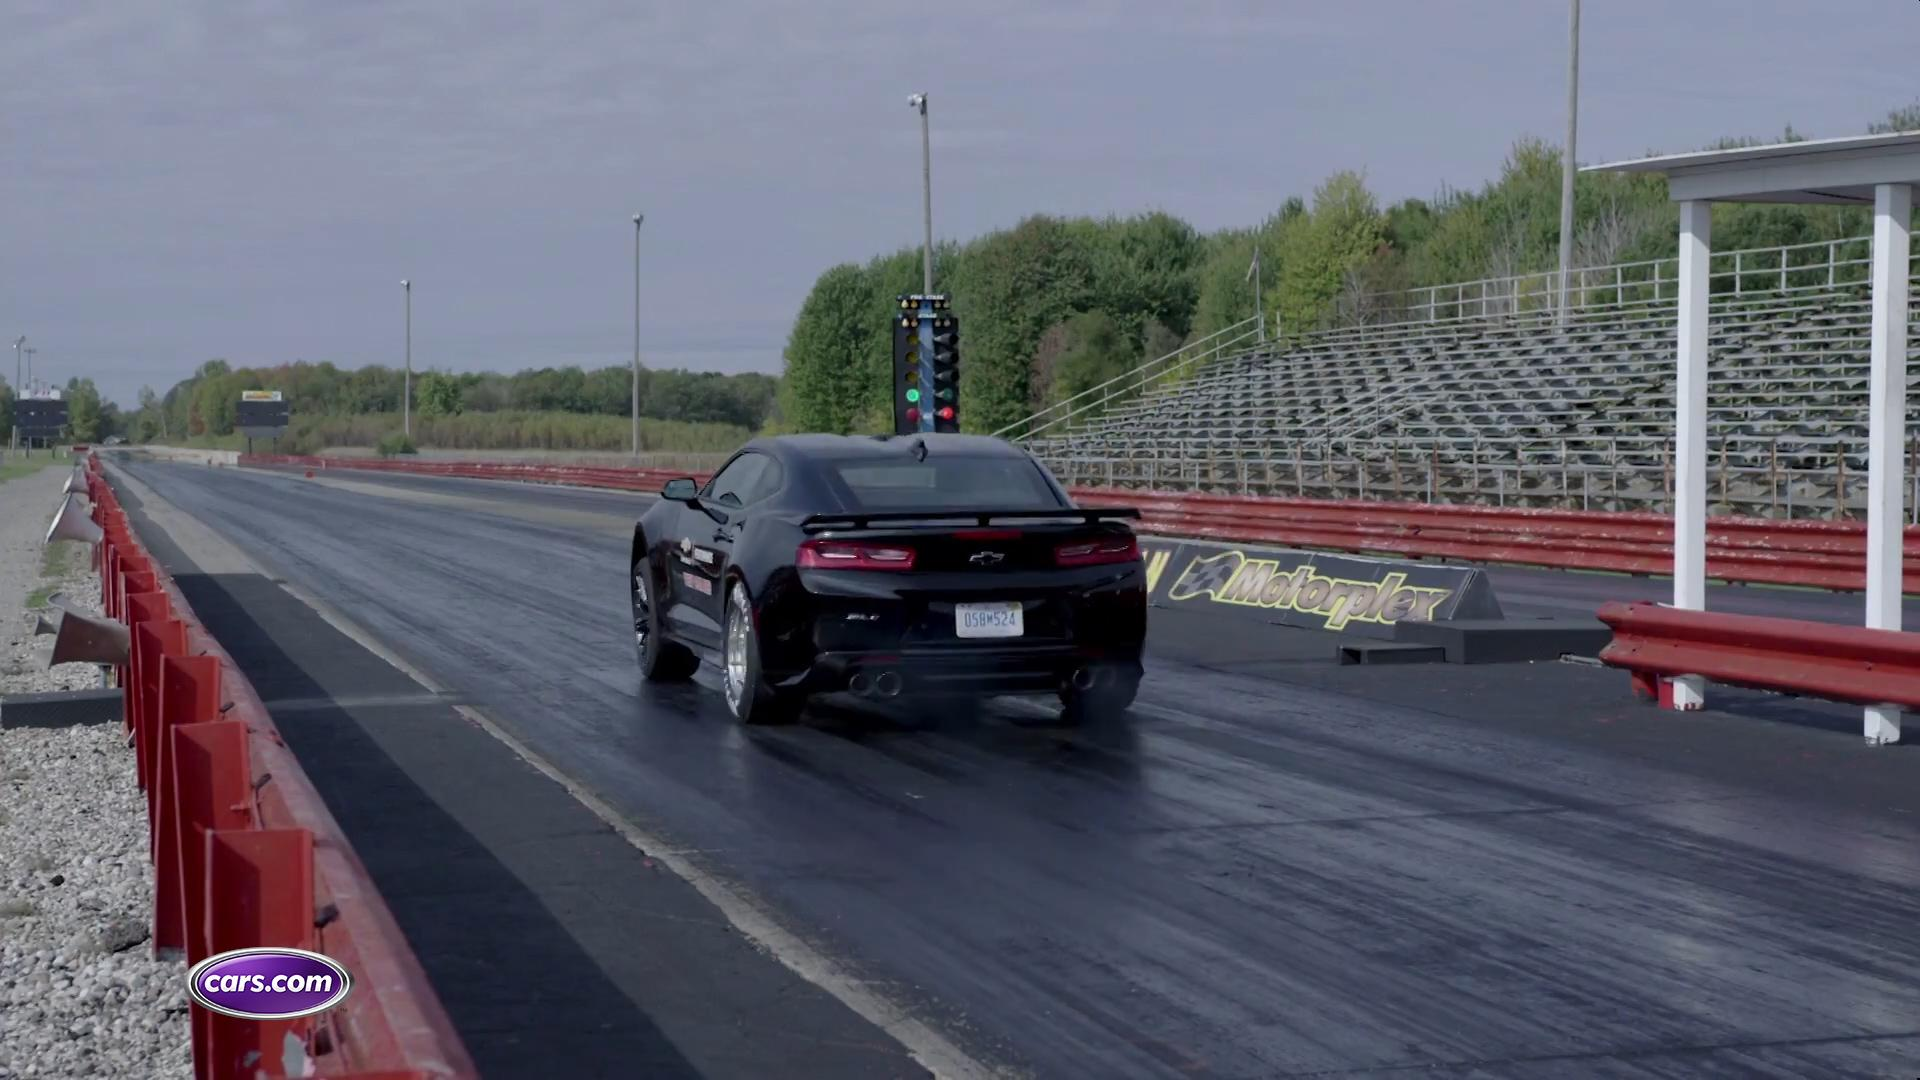 Video: 2018 Chevrolet Camaro ZL1 Drag Race Concept — Cars.com